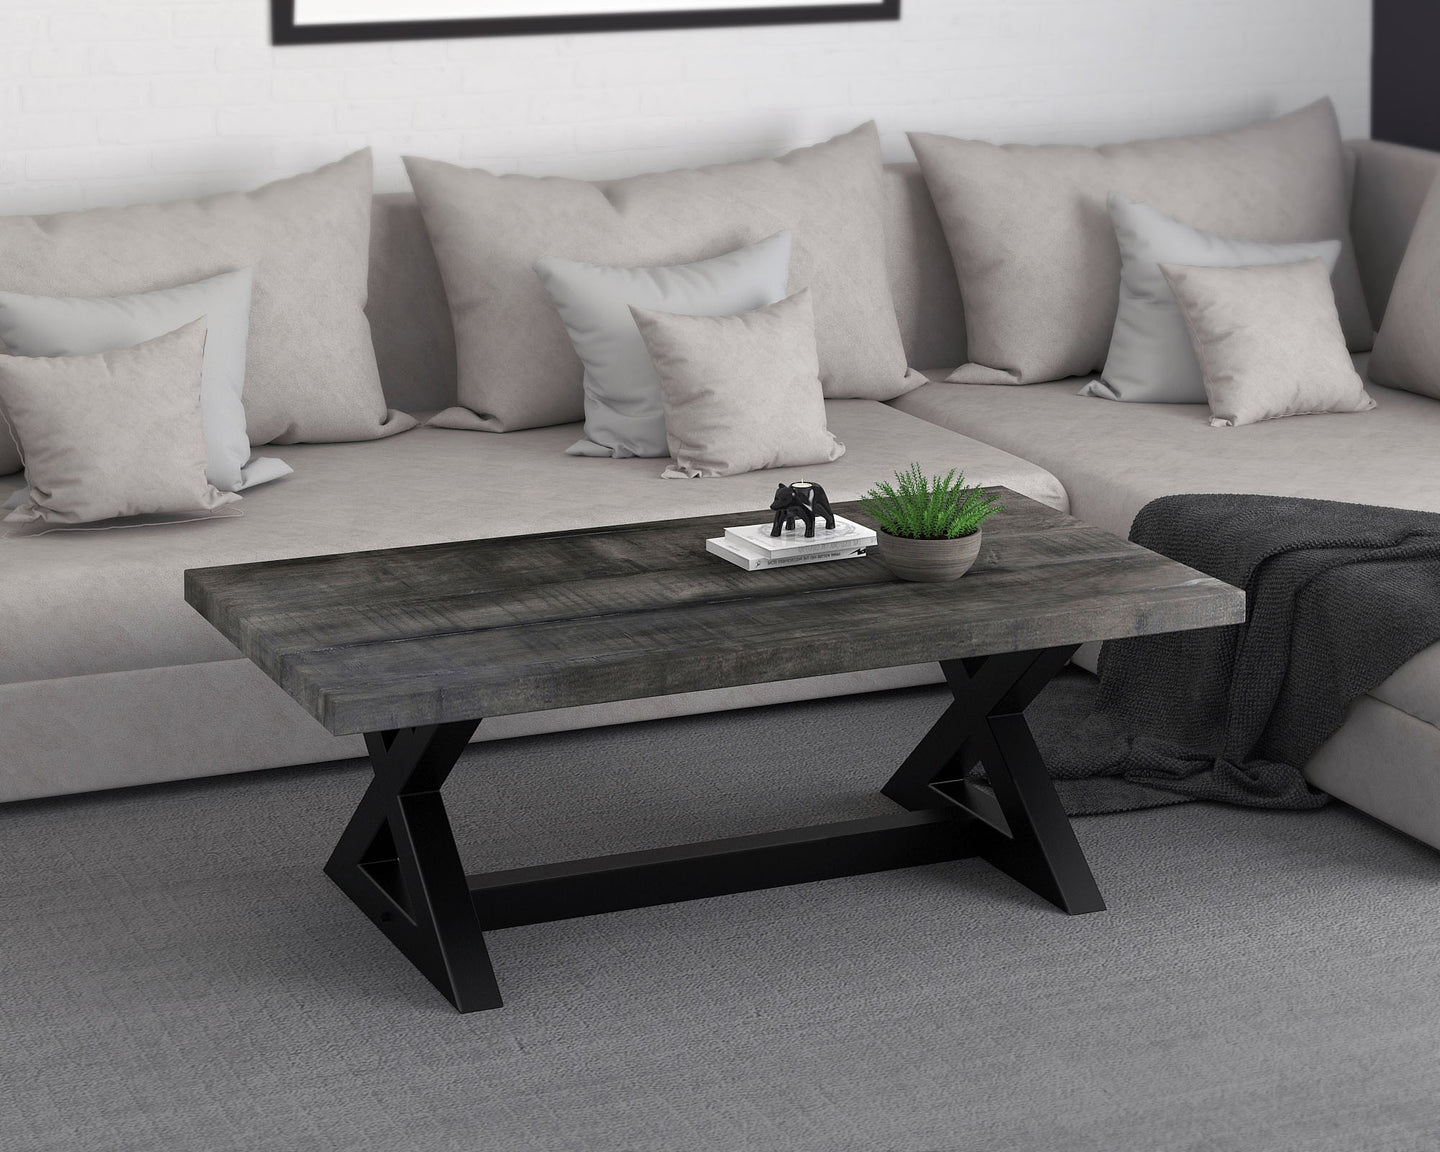 ZAX-COFFEE TABLE-DISTRESSED GREY - ACCENT FURNITURE